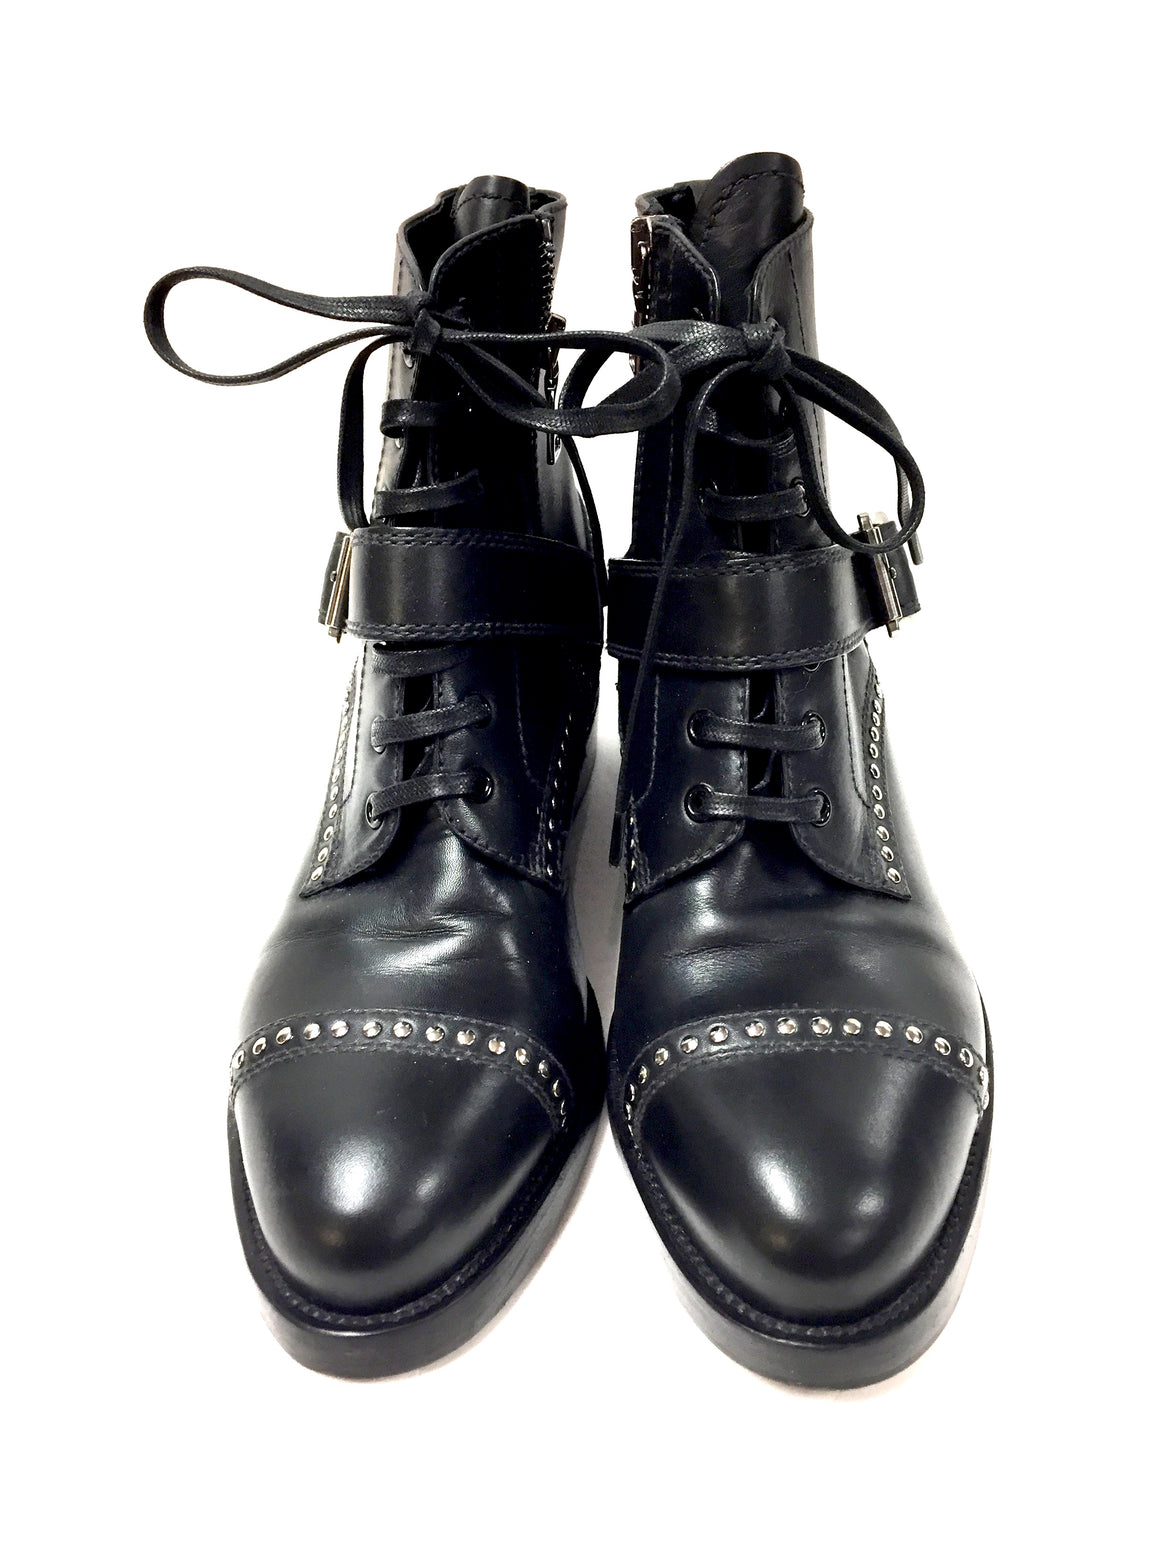 PRADA Black Leather Silver-Studded Lace-Up Flat Ankle-Boots Booties Shoes Size: IT 37.5 / US 7.5